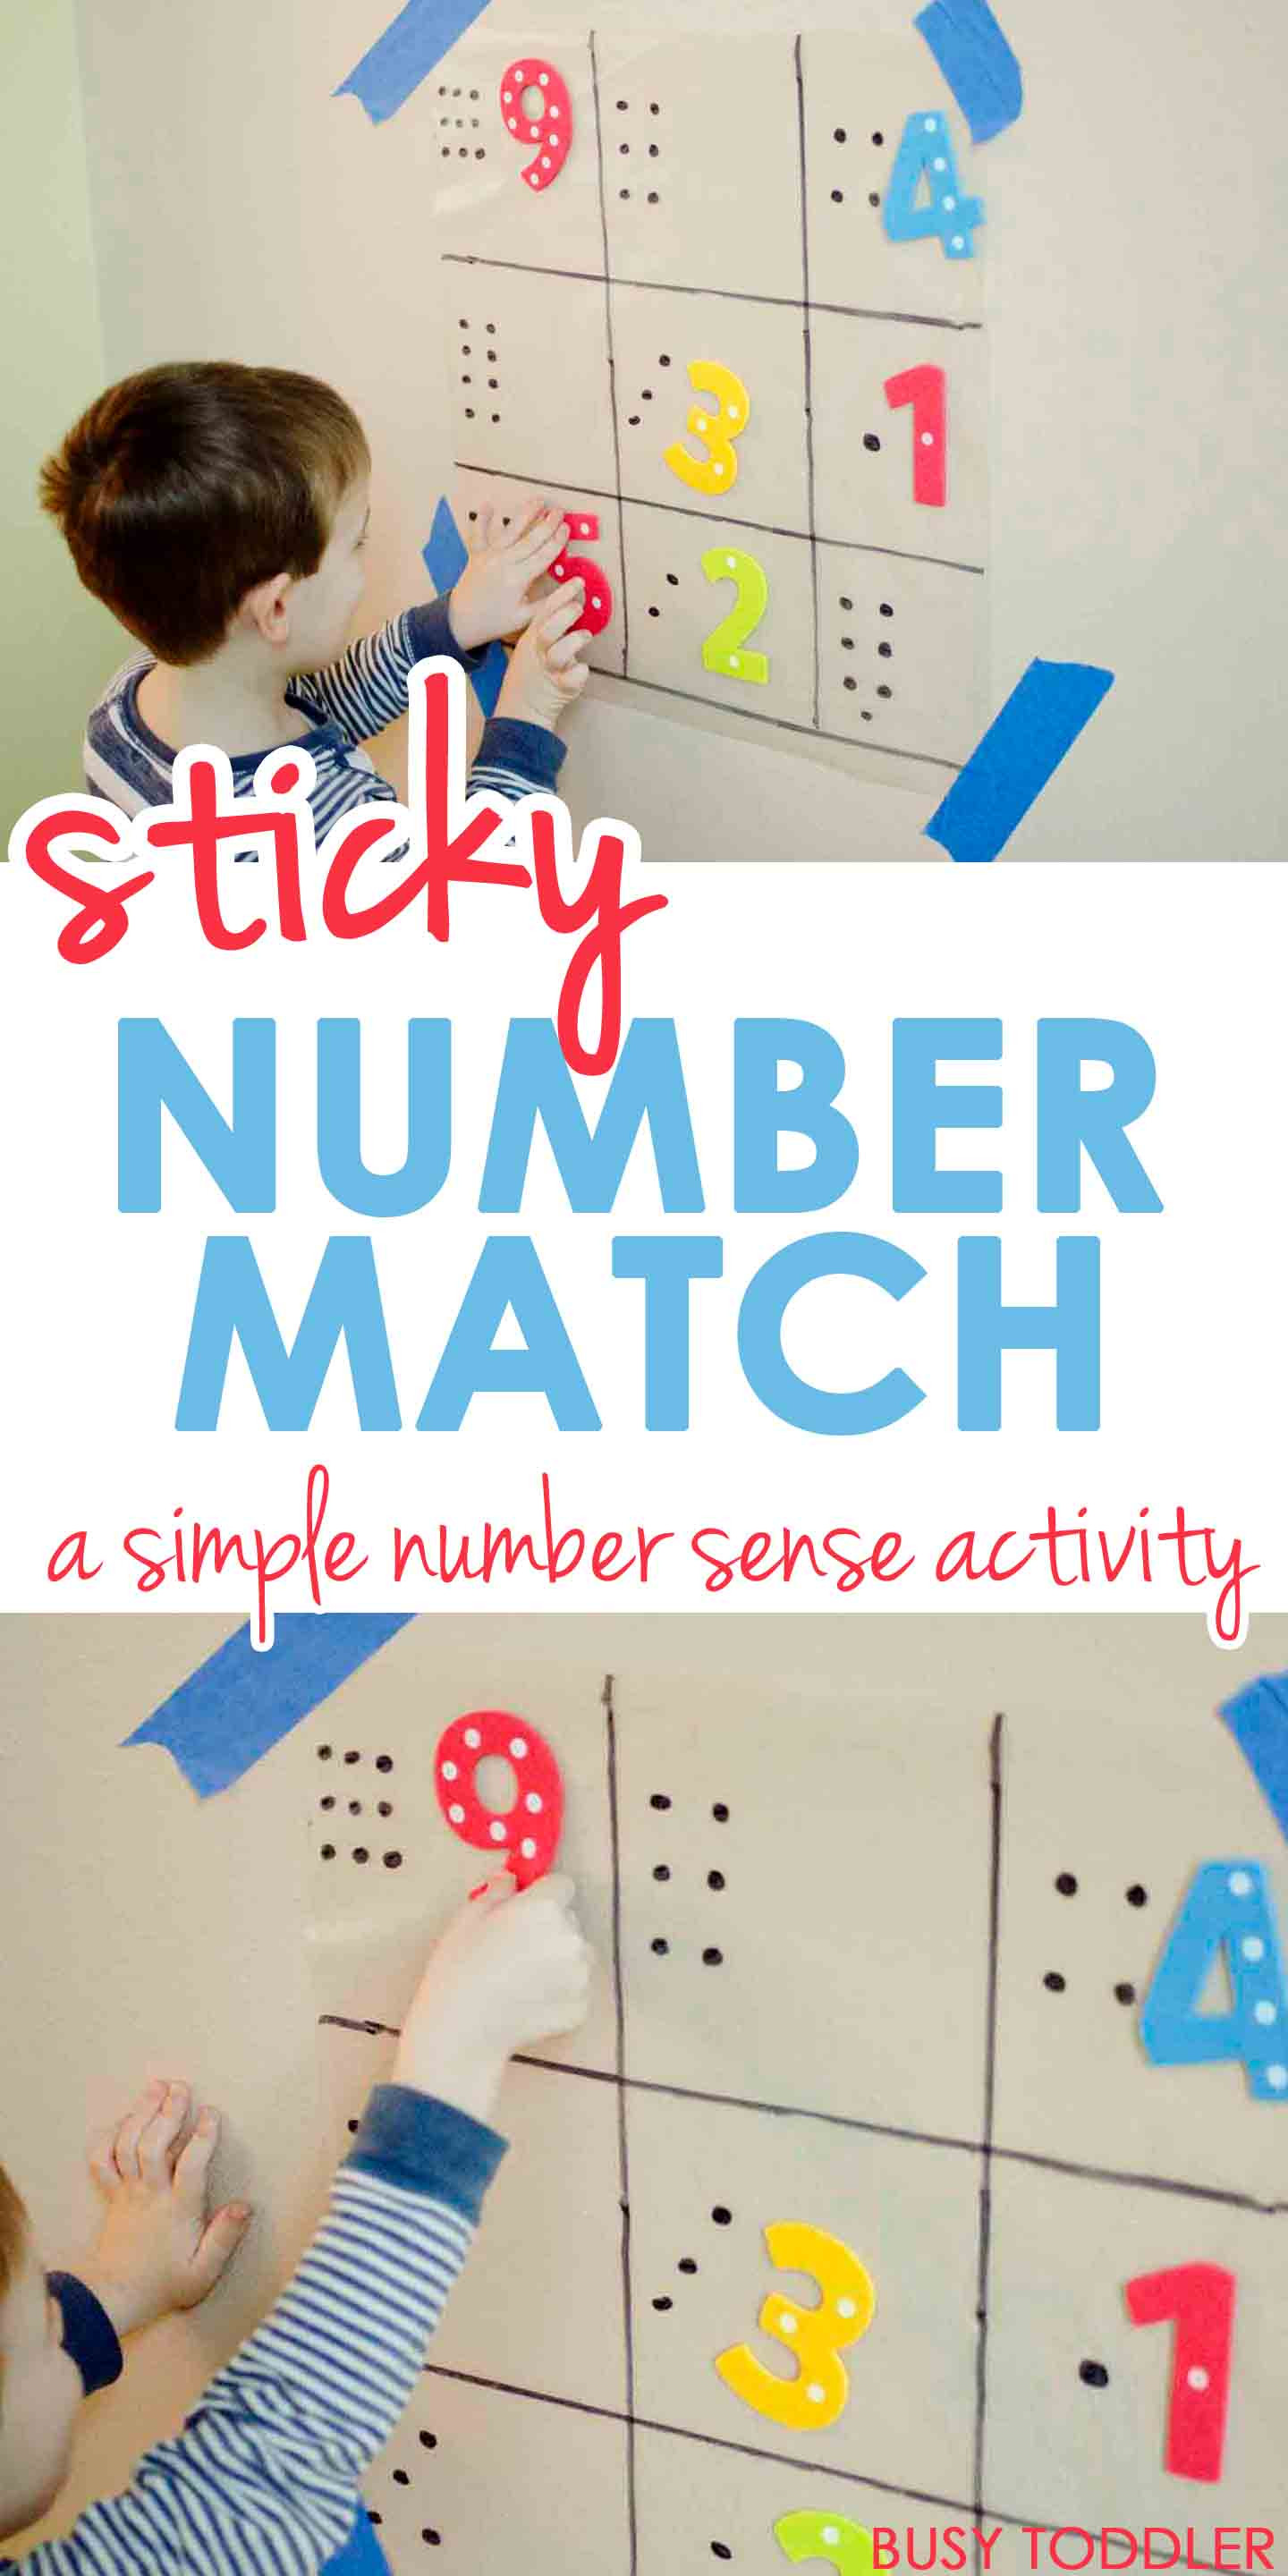 Best ideas about Number Crafts For Preschoolers . Save or Pin Sticky Number Match Busy Toddler Now.